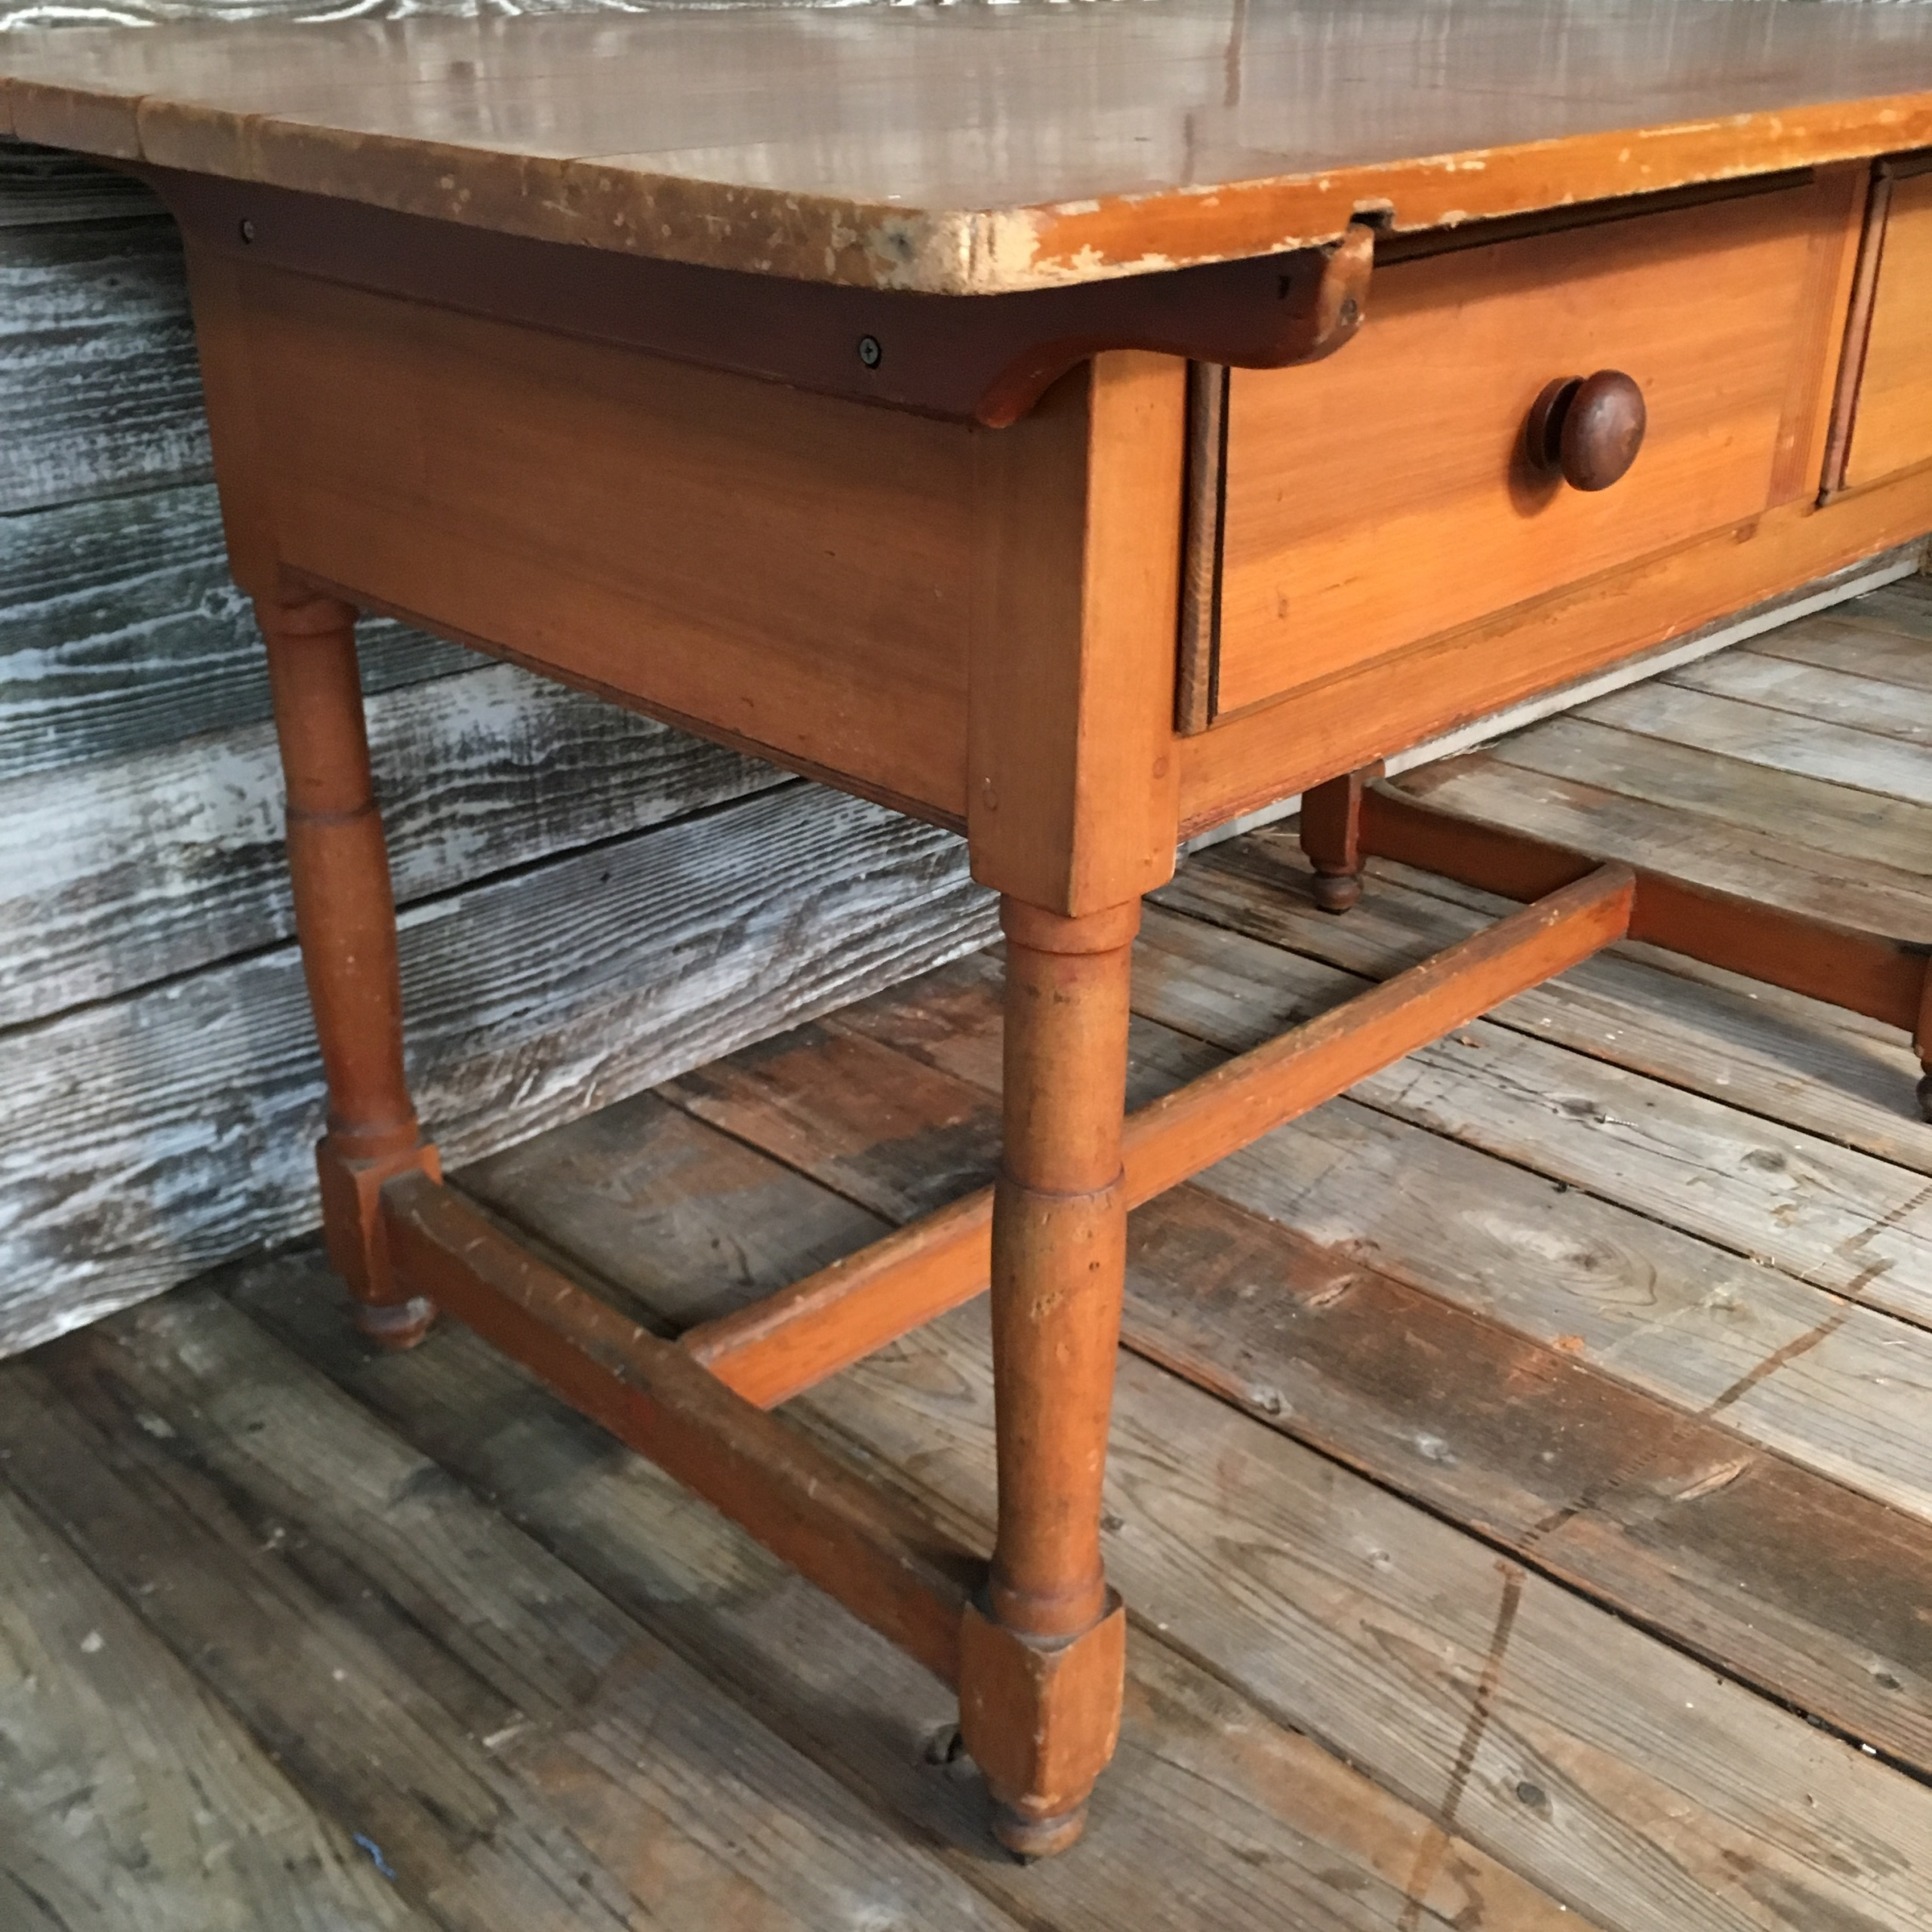 Farmhouse Kitchen Table With Drawers: Farmhouse Table W/ 2 Drawers